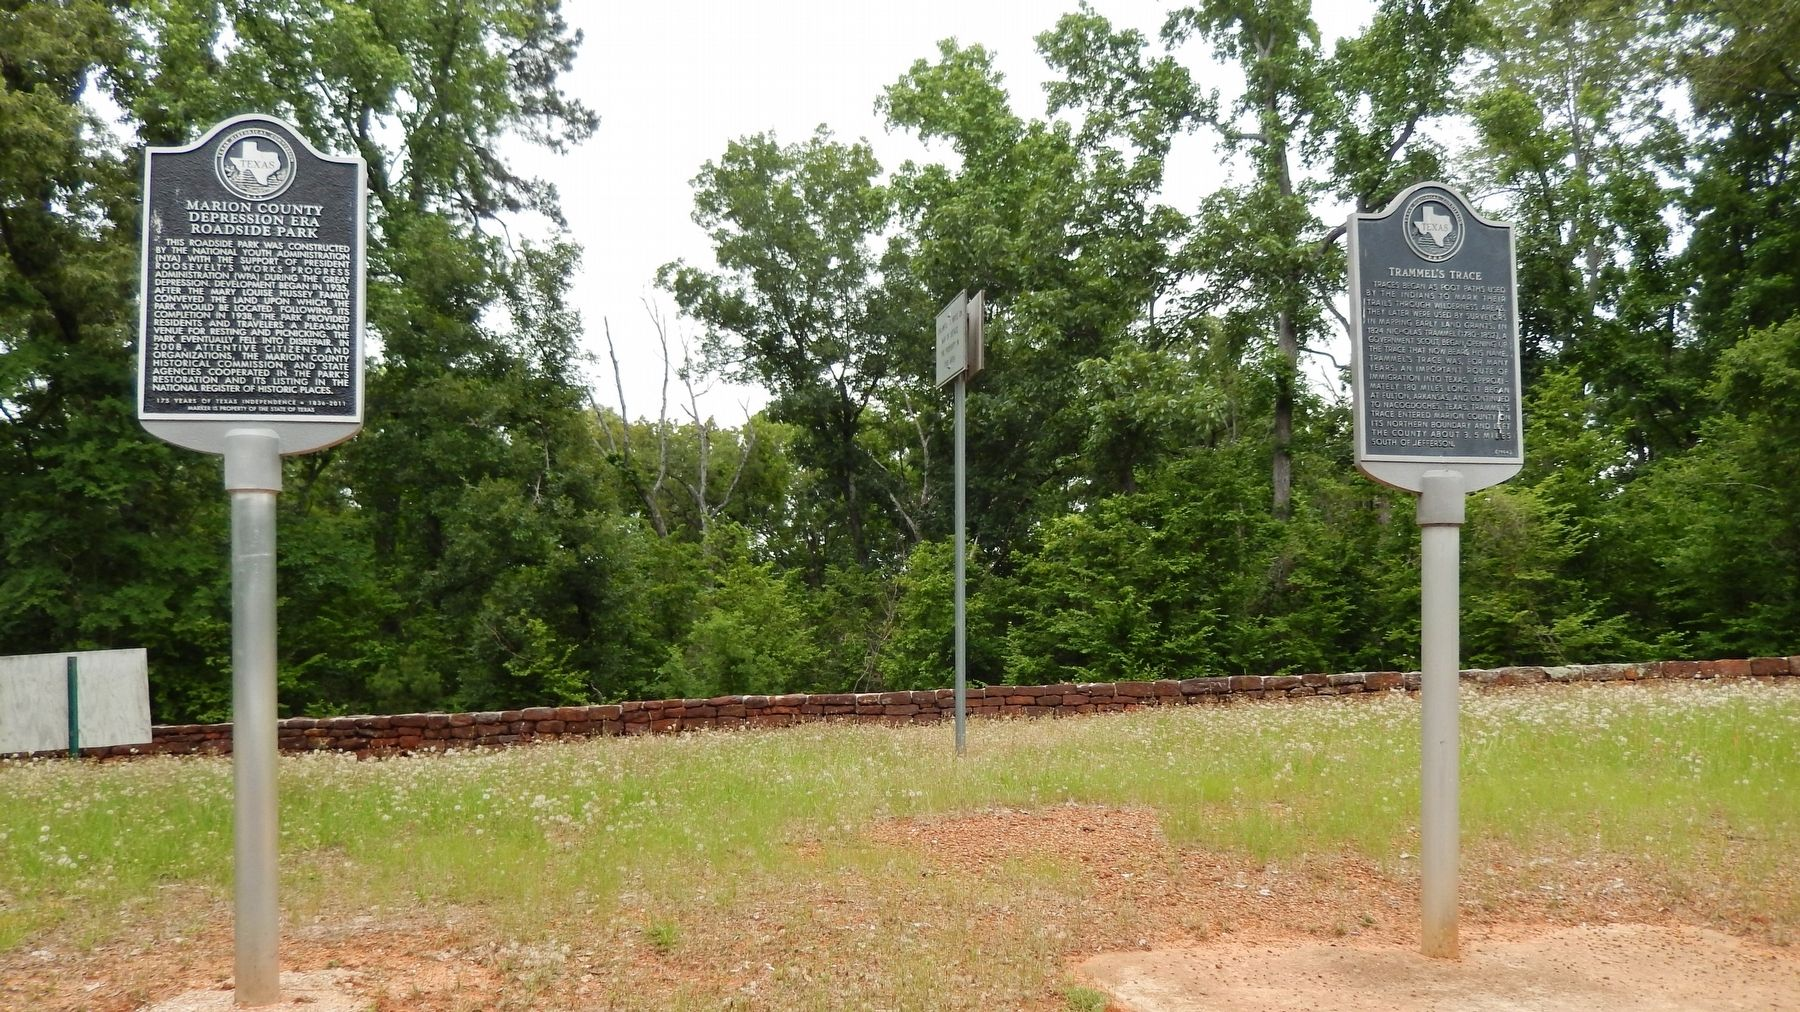 Trammel&#39;s Trace Marker (<i>wide view showing adjacent marker</i>) image. Click for full size.